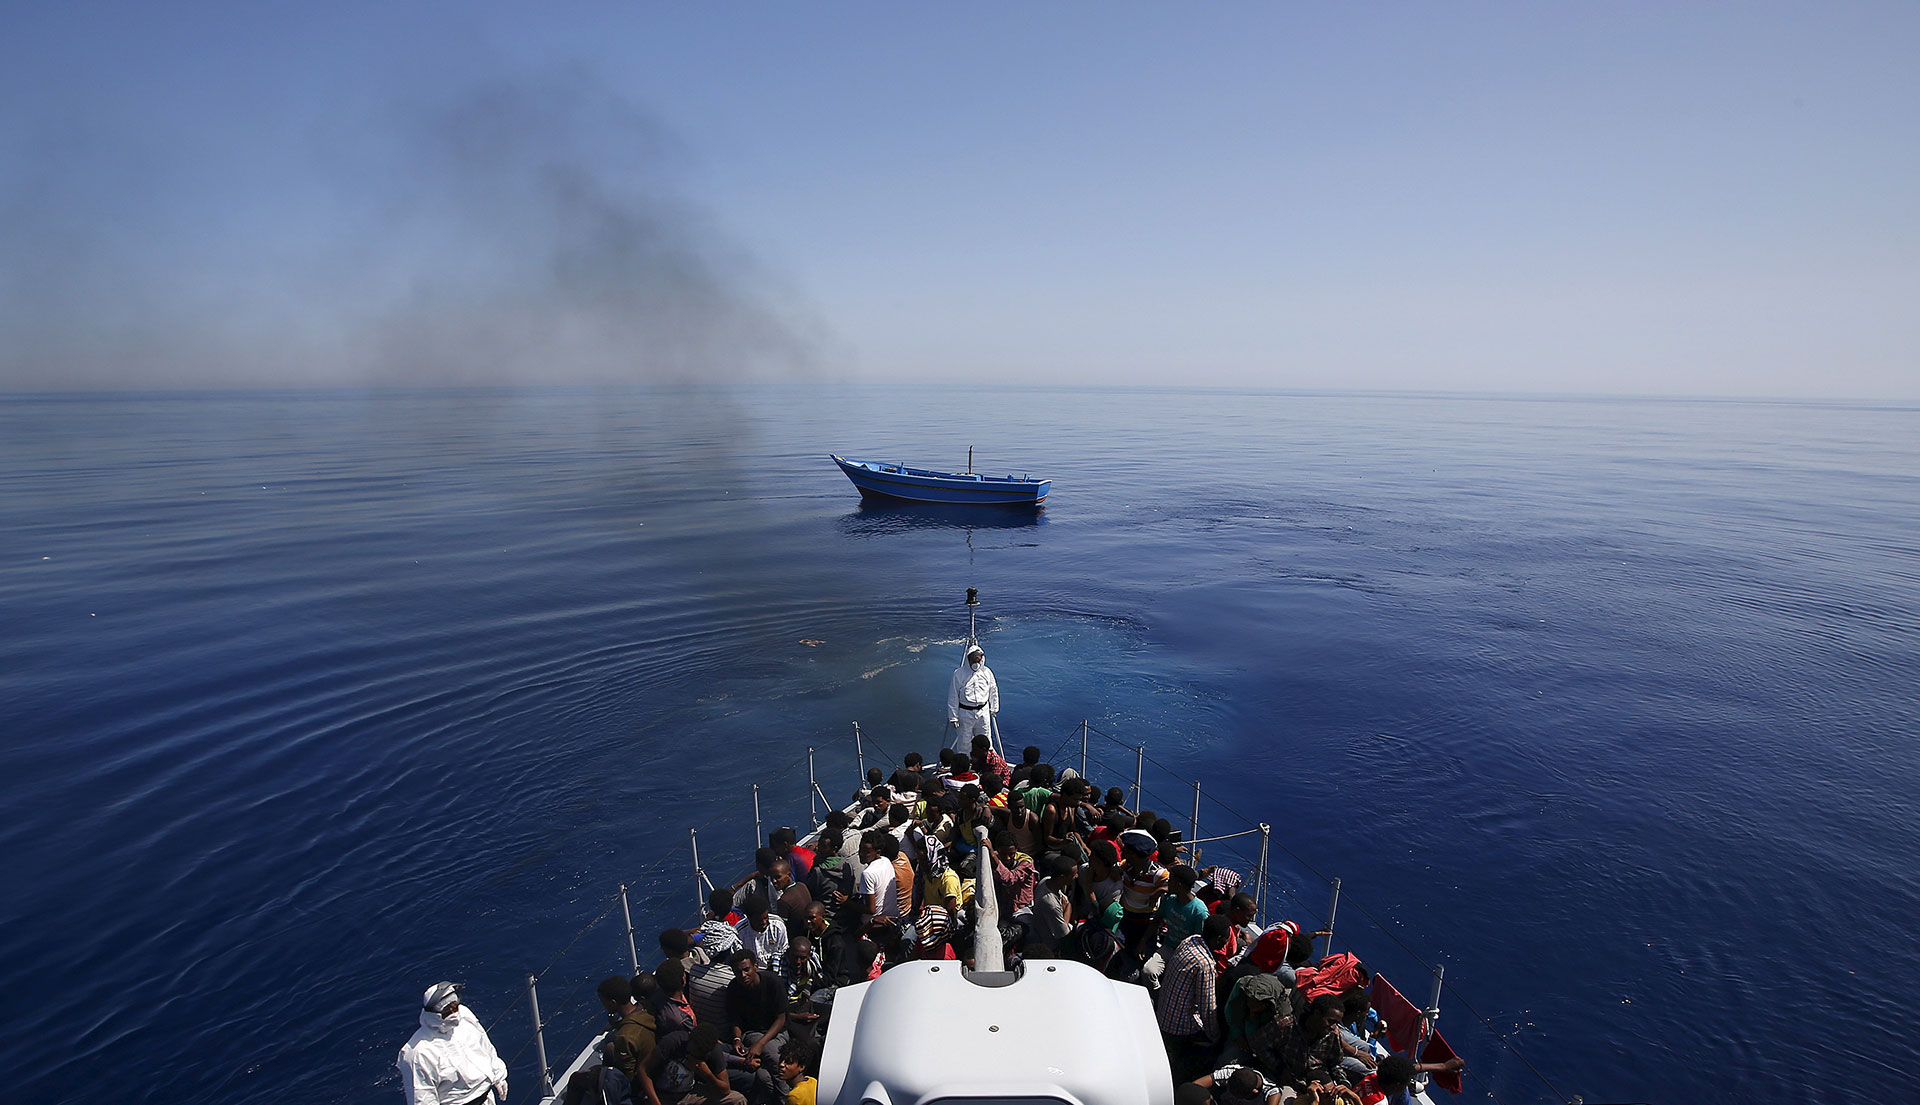 More than 200 migrants found drifting in six dinghies off Spain's southern coast were rescued on Saturday, the maritime rescue service said. Reuters